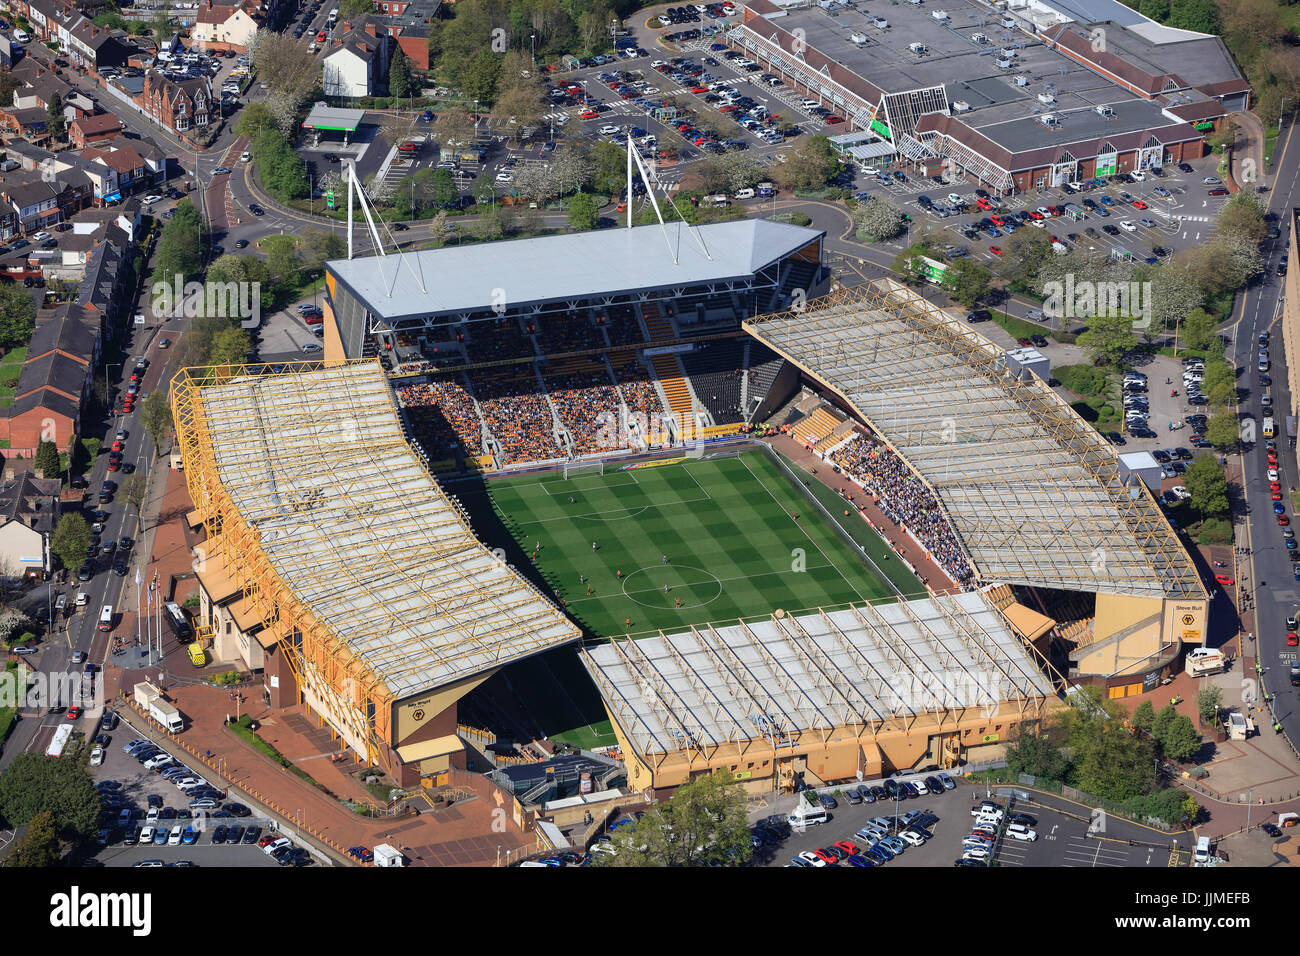 An aerial view of Molineux Stadium, home of Wolverhampton Wanderers FC Stock Photo